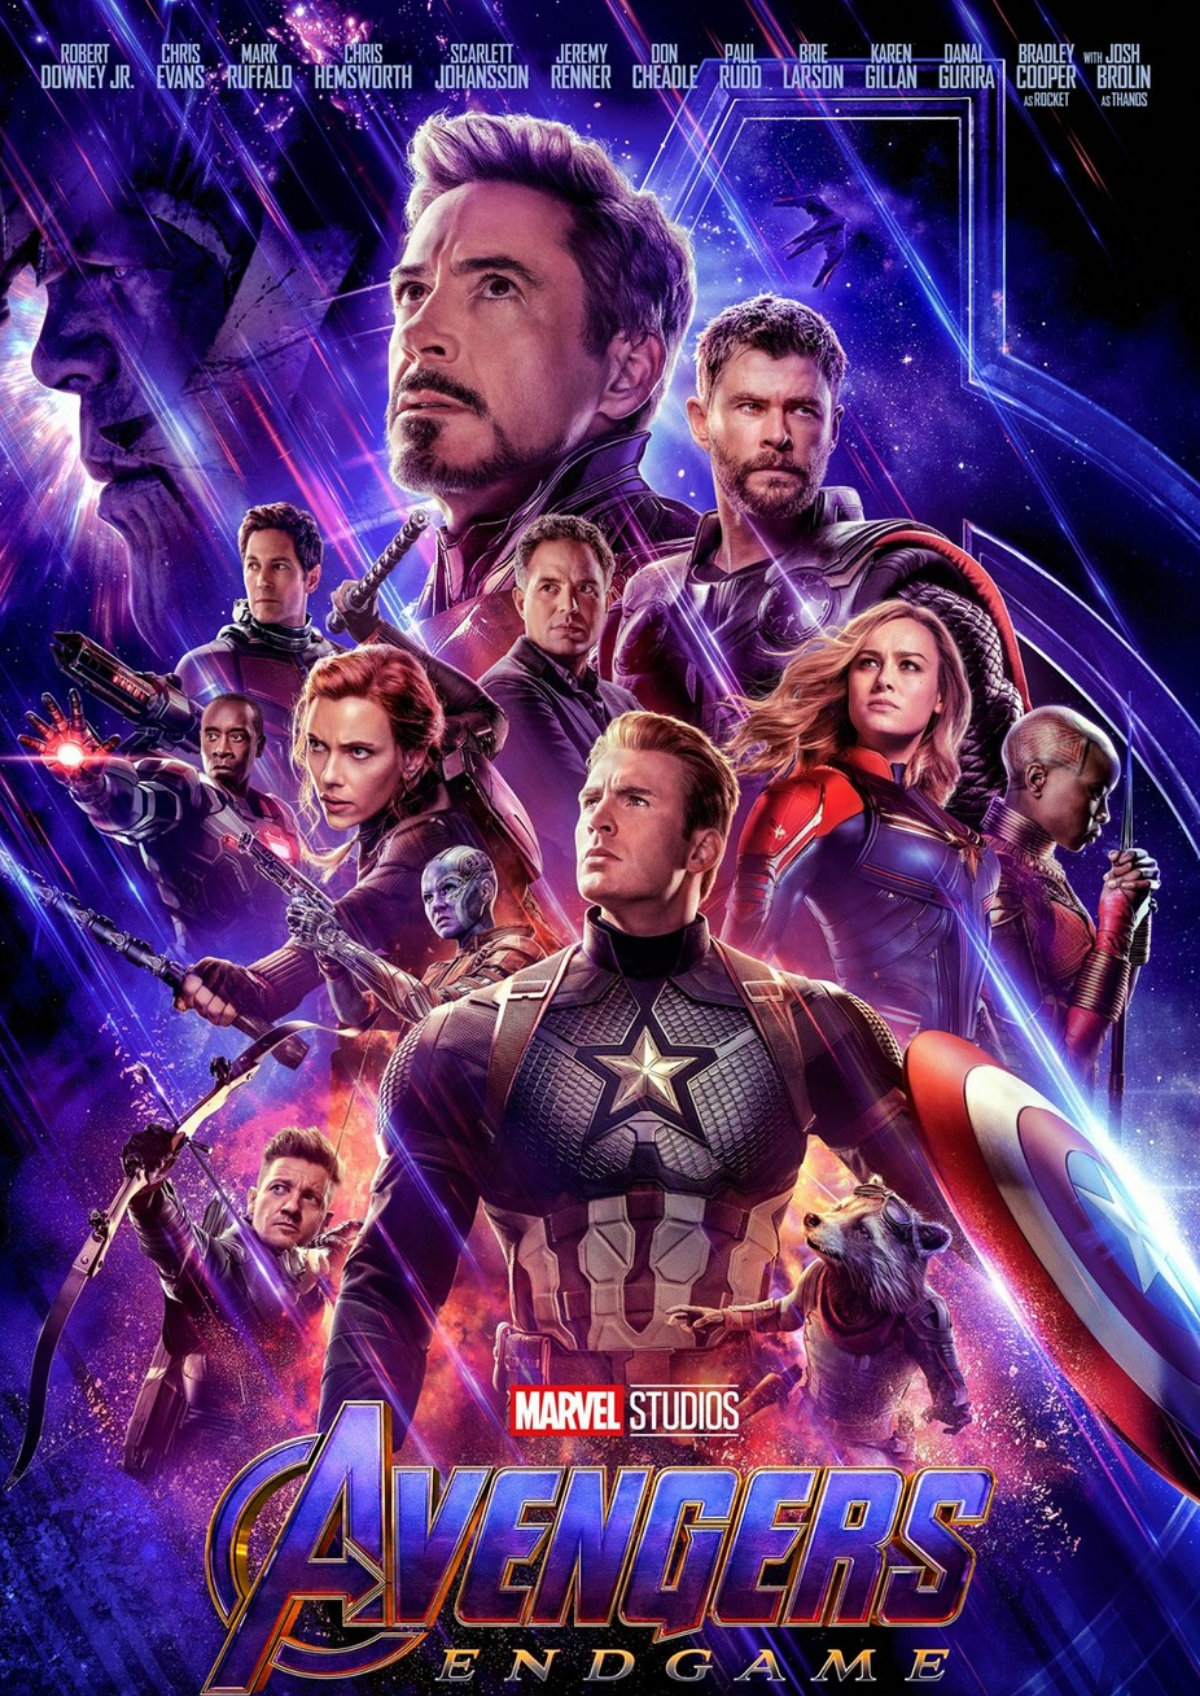 'Avengers: Endgame' movie poster